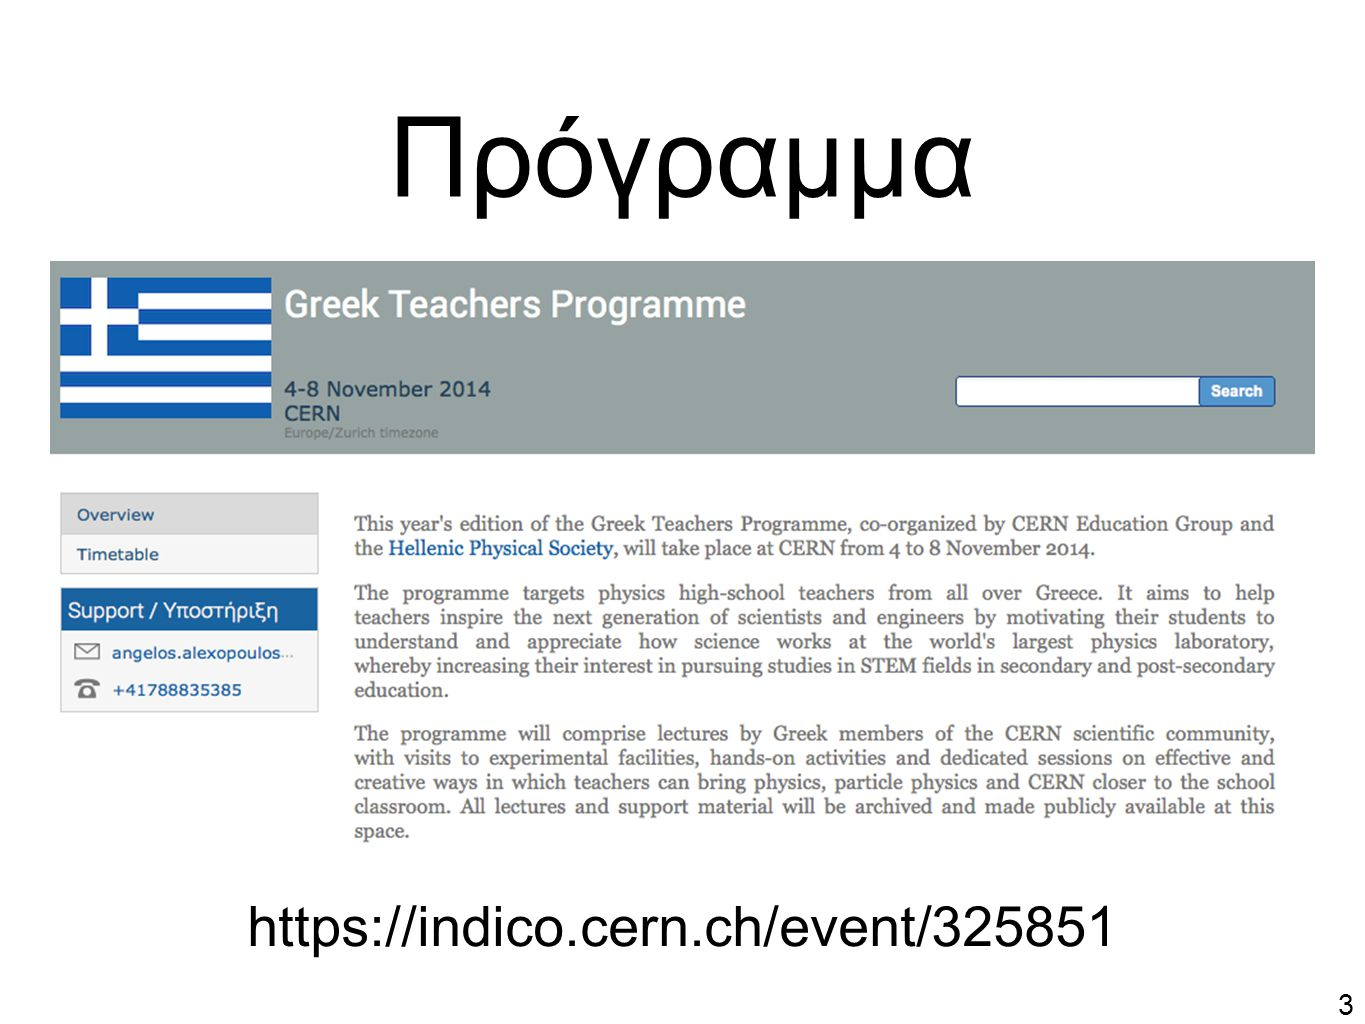 3 Πρόγραμμα https://indico.cern.ch/event/325851